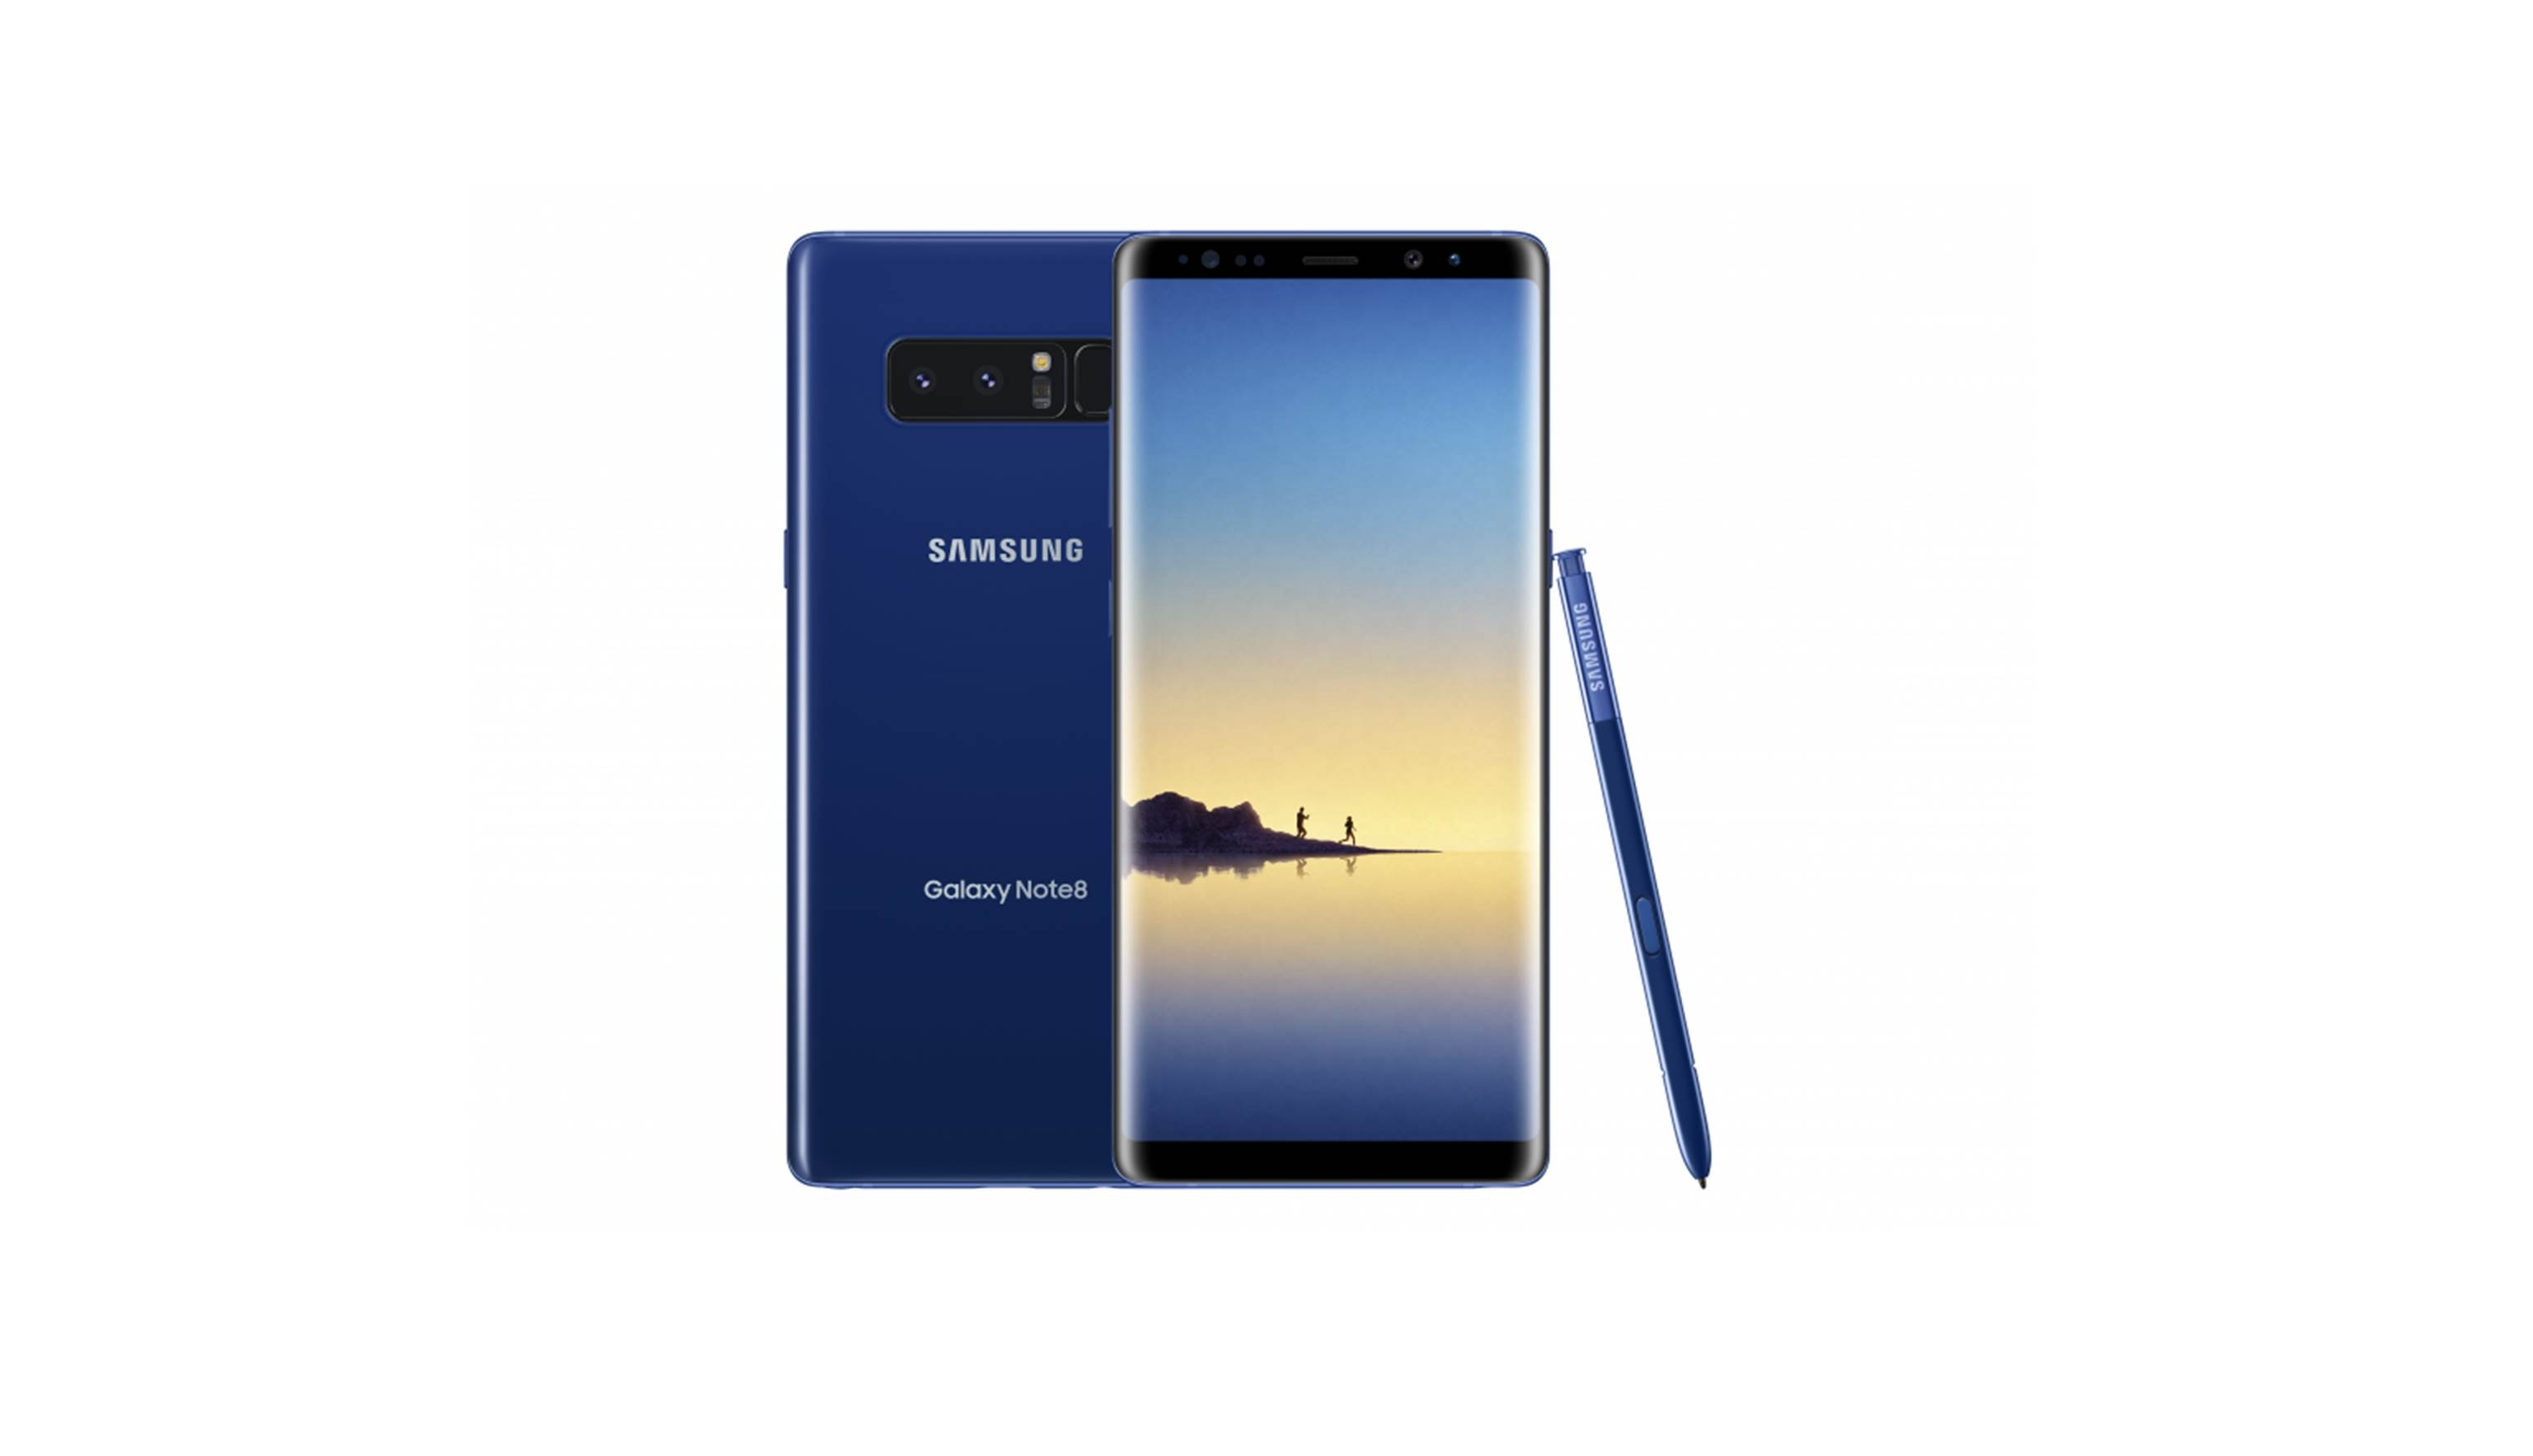 Samsung Galaxy Note8 - Deepsea Blue (3)